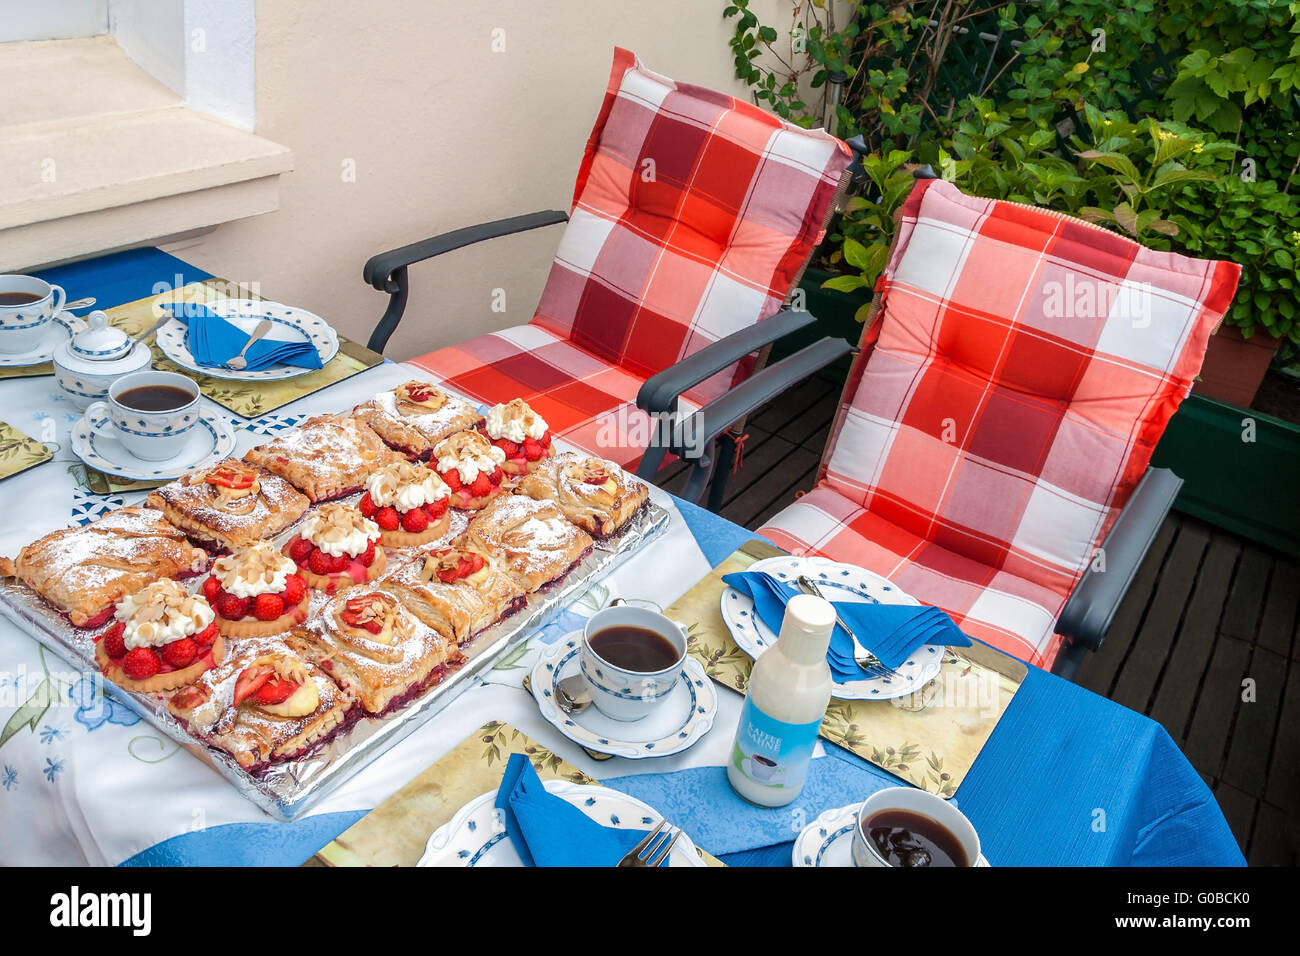 Summerly covered coffee-table with tartes-selectio - Stock Image